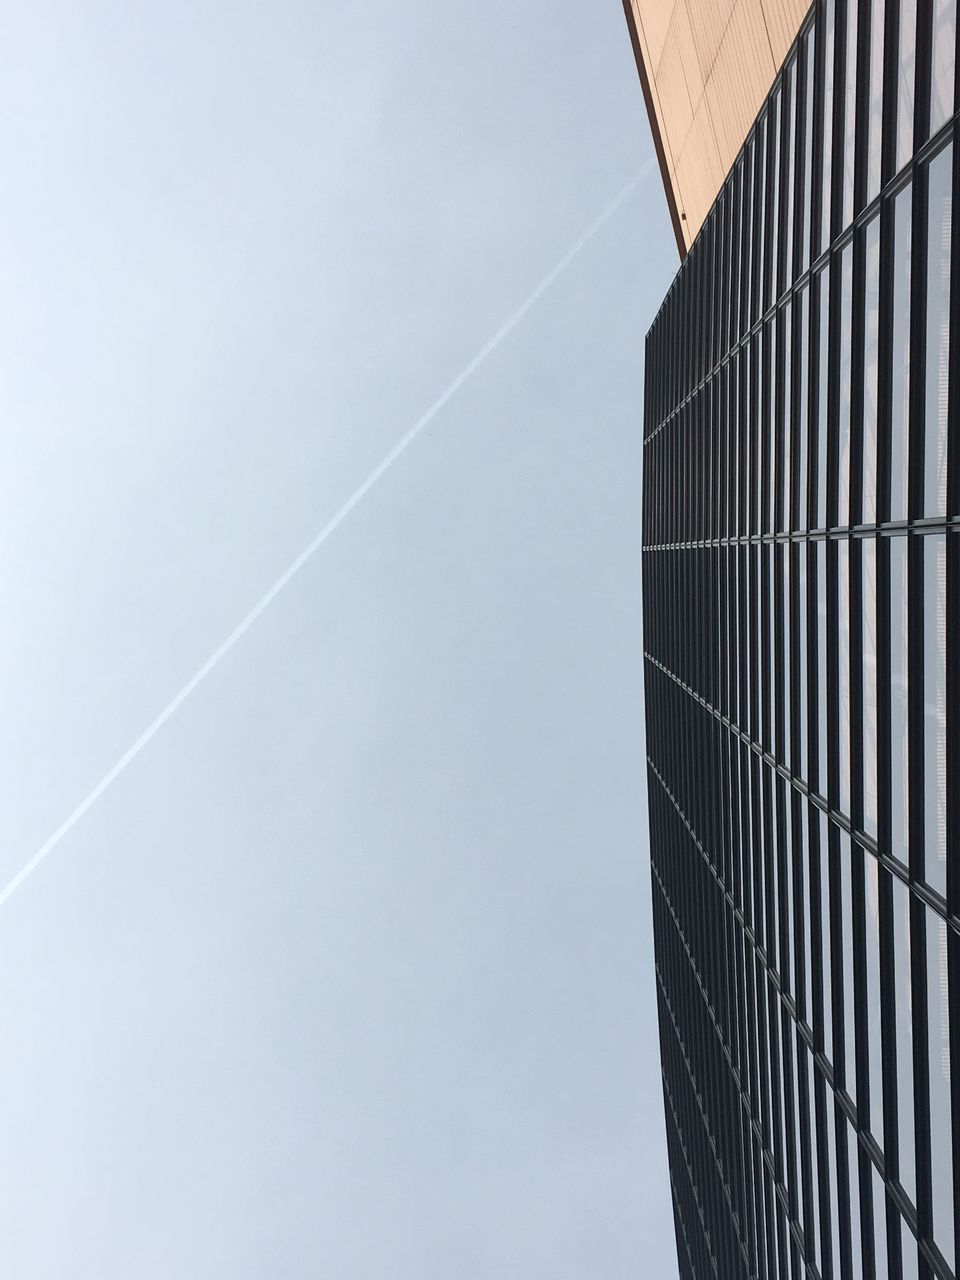 no people, outdoors, day, low angle view, vapor trail, contrail, sky, nature